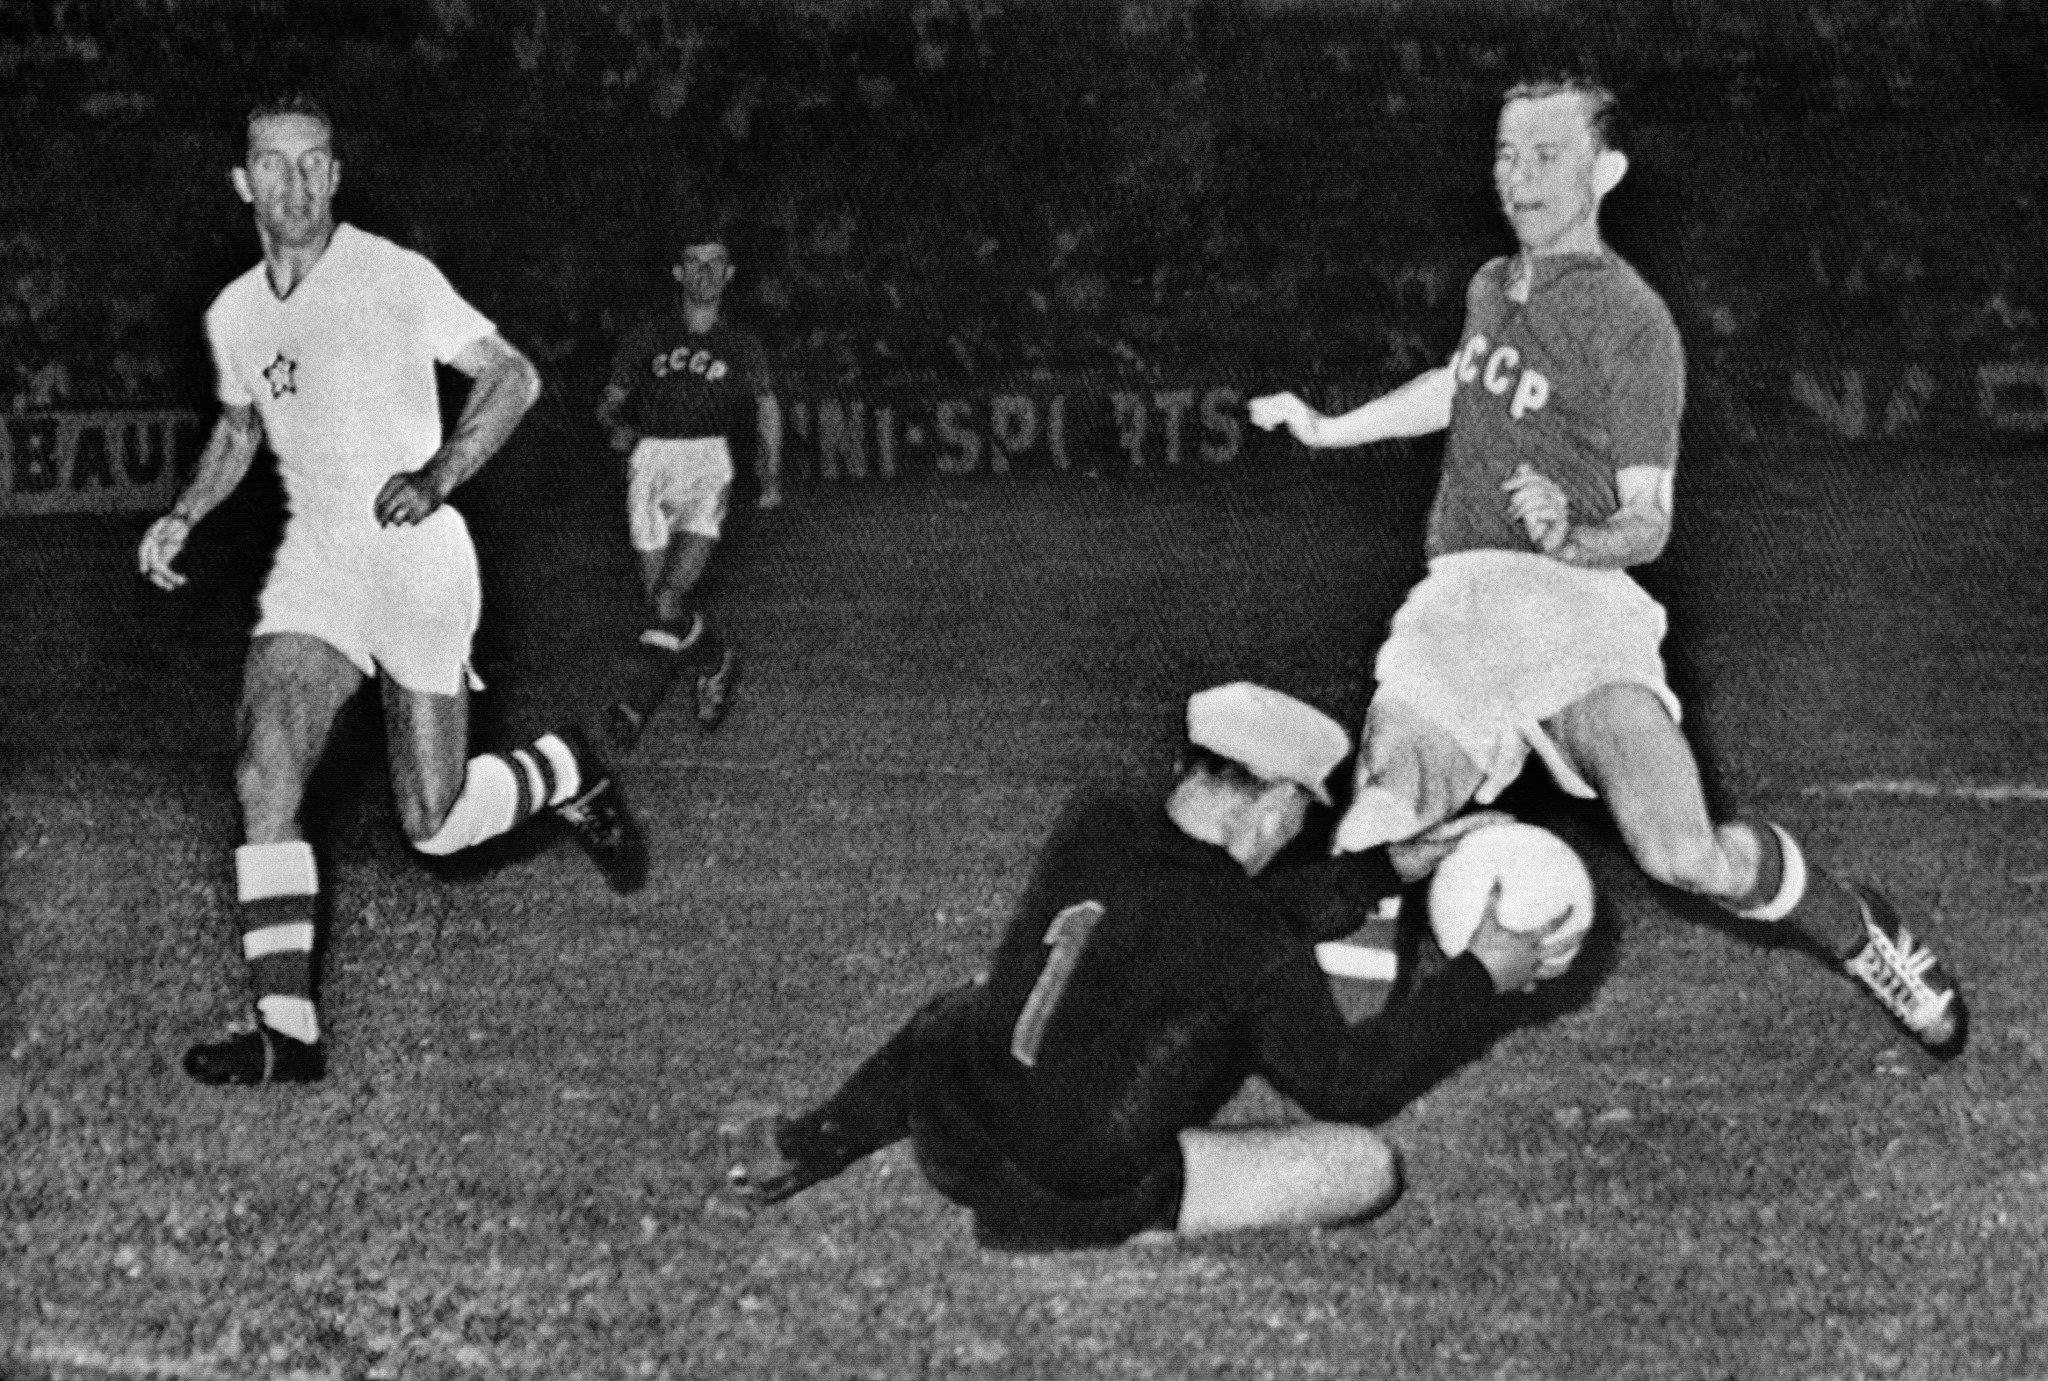 The European Nations Cup was held in 1960, considered the first European Football Championship ©Getty Images